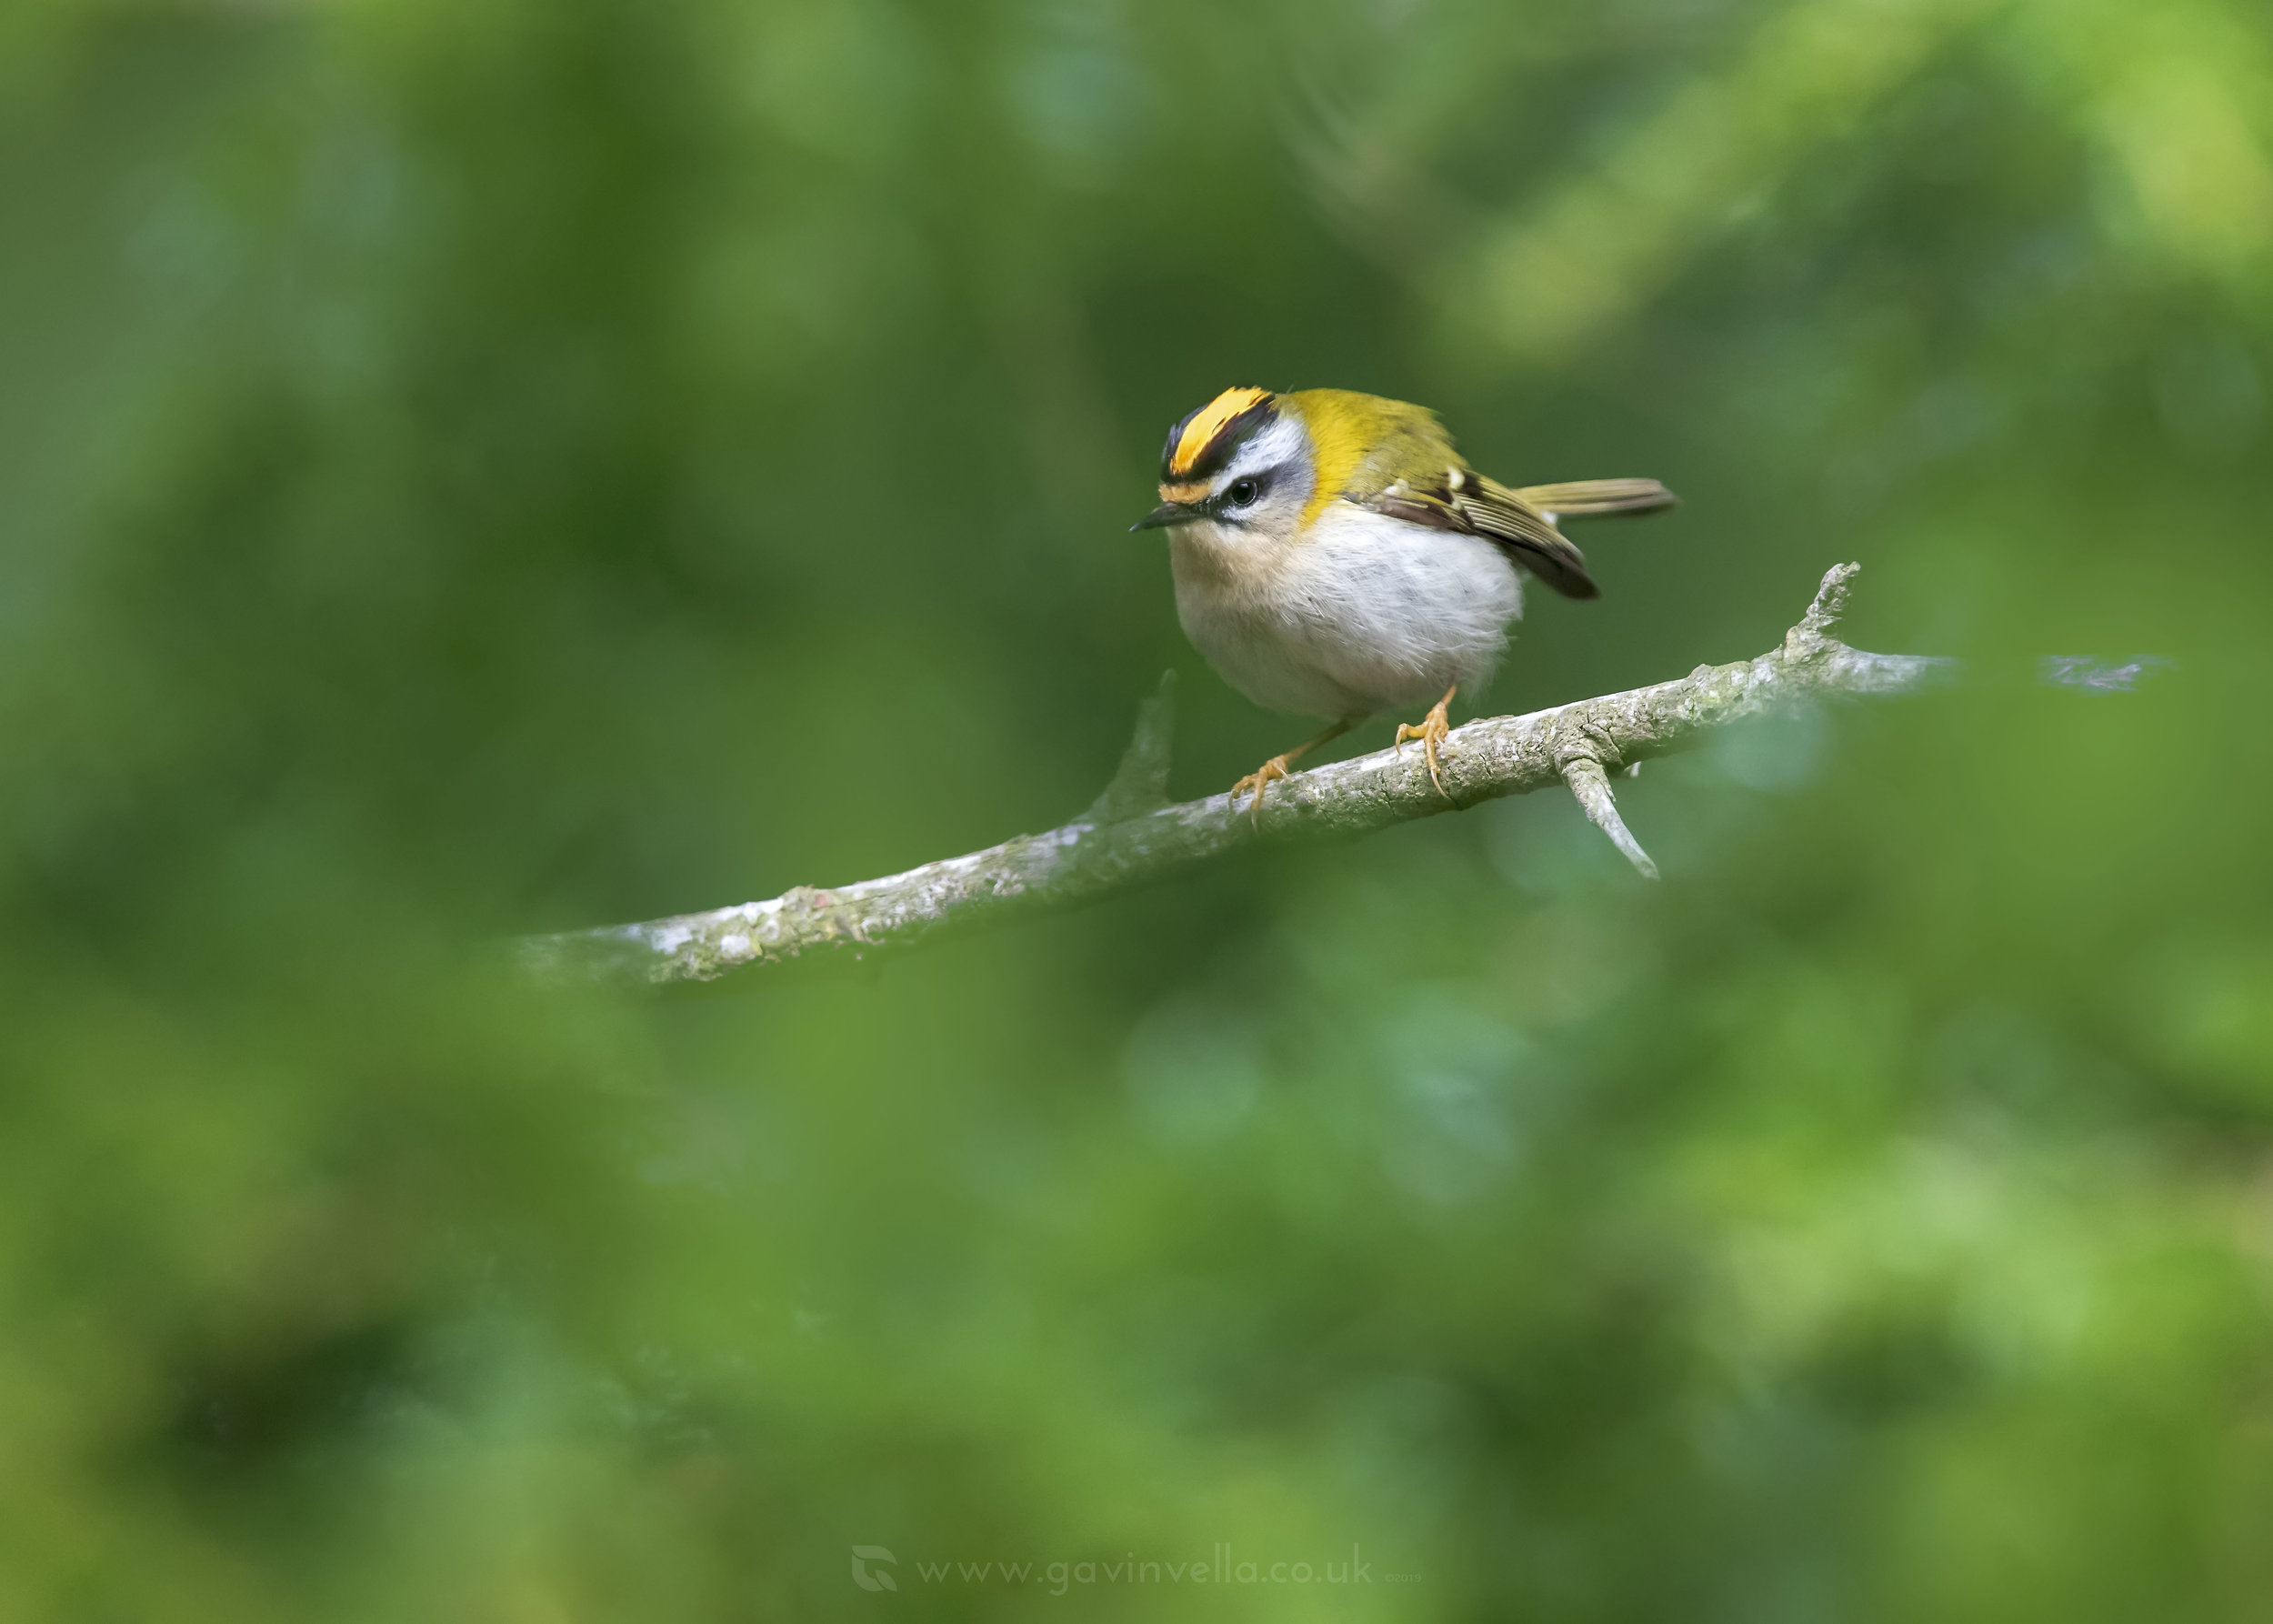 Firecrest Framed W 18th April.jpg